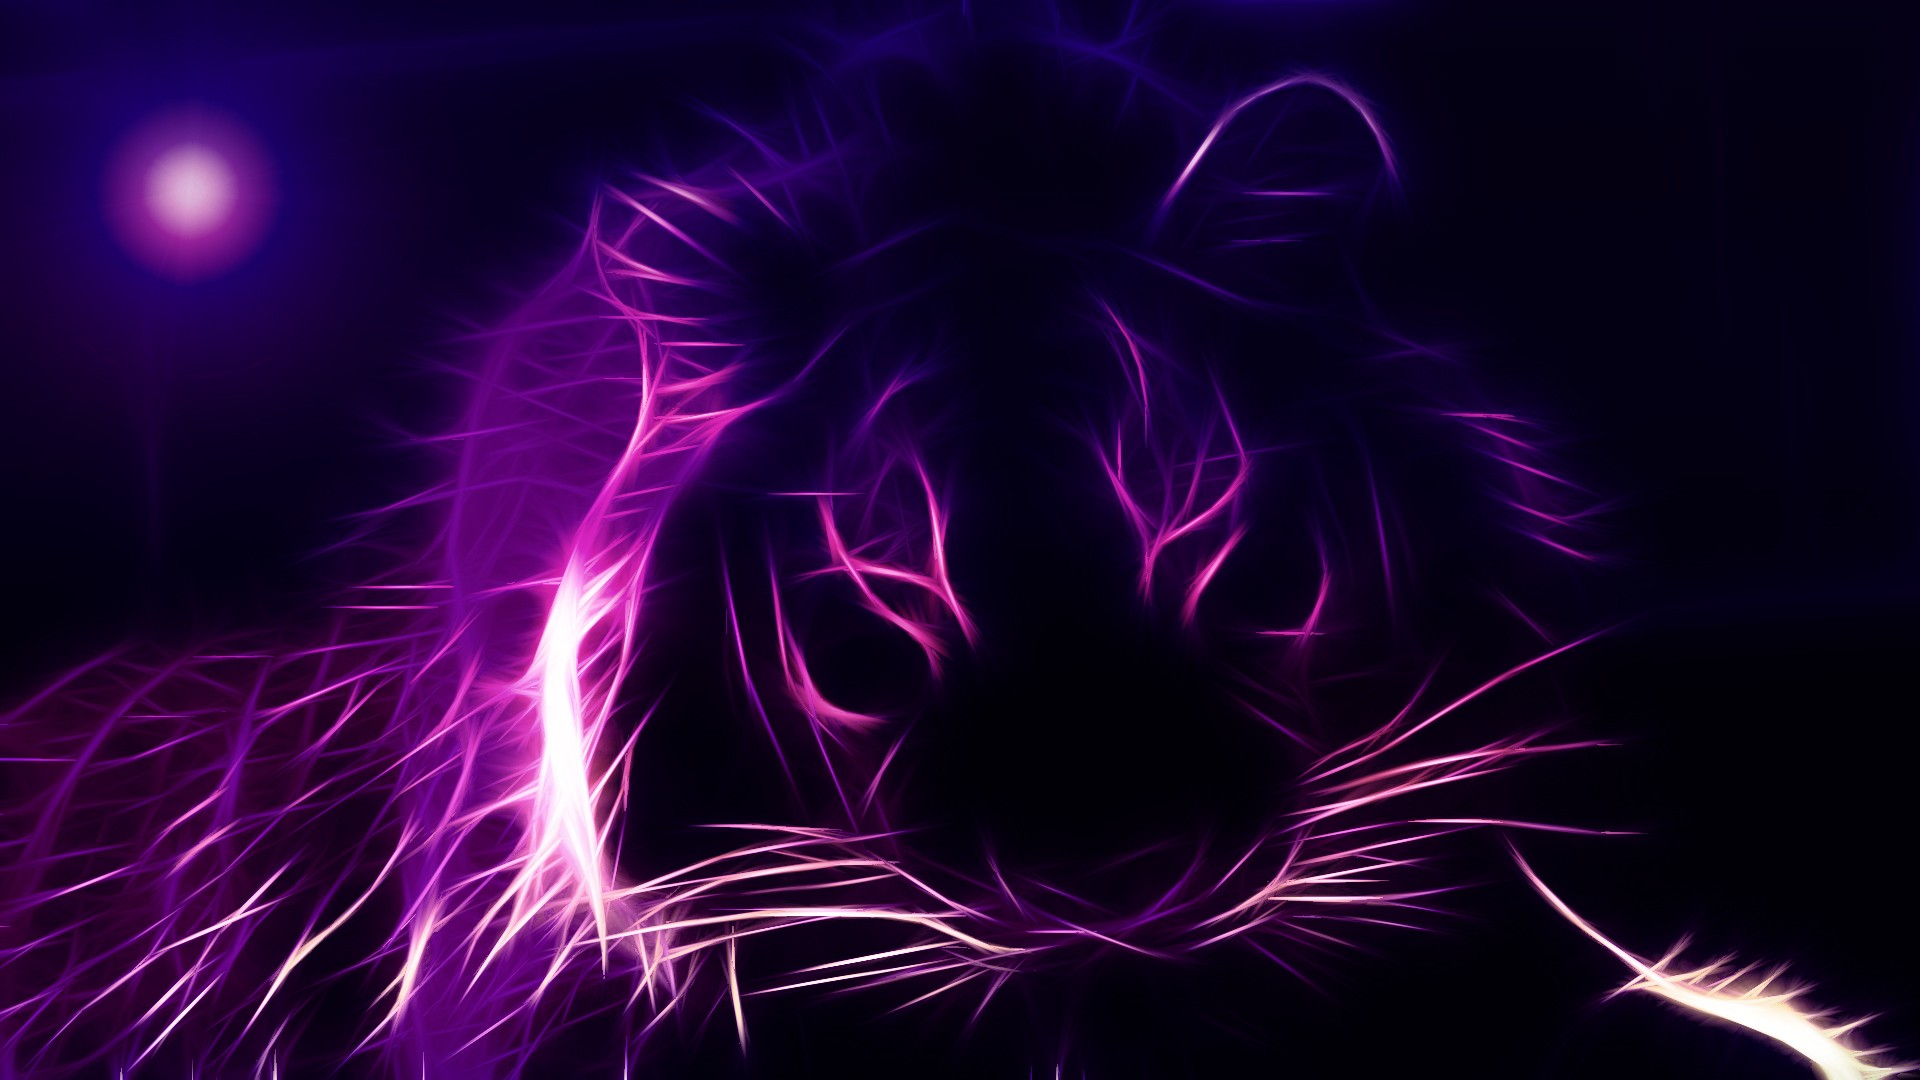 Purple Desktop Wallpapers